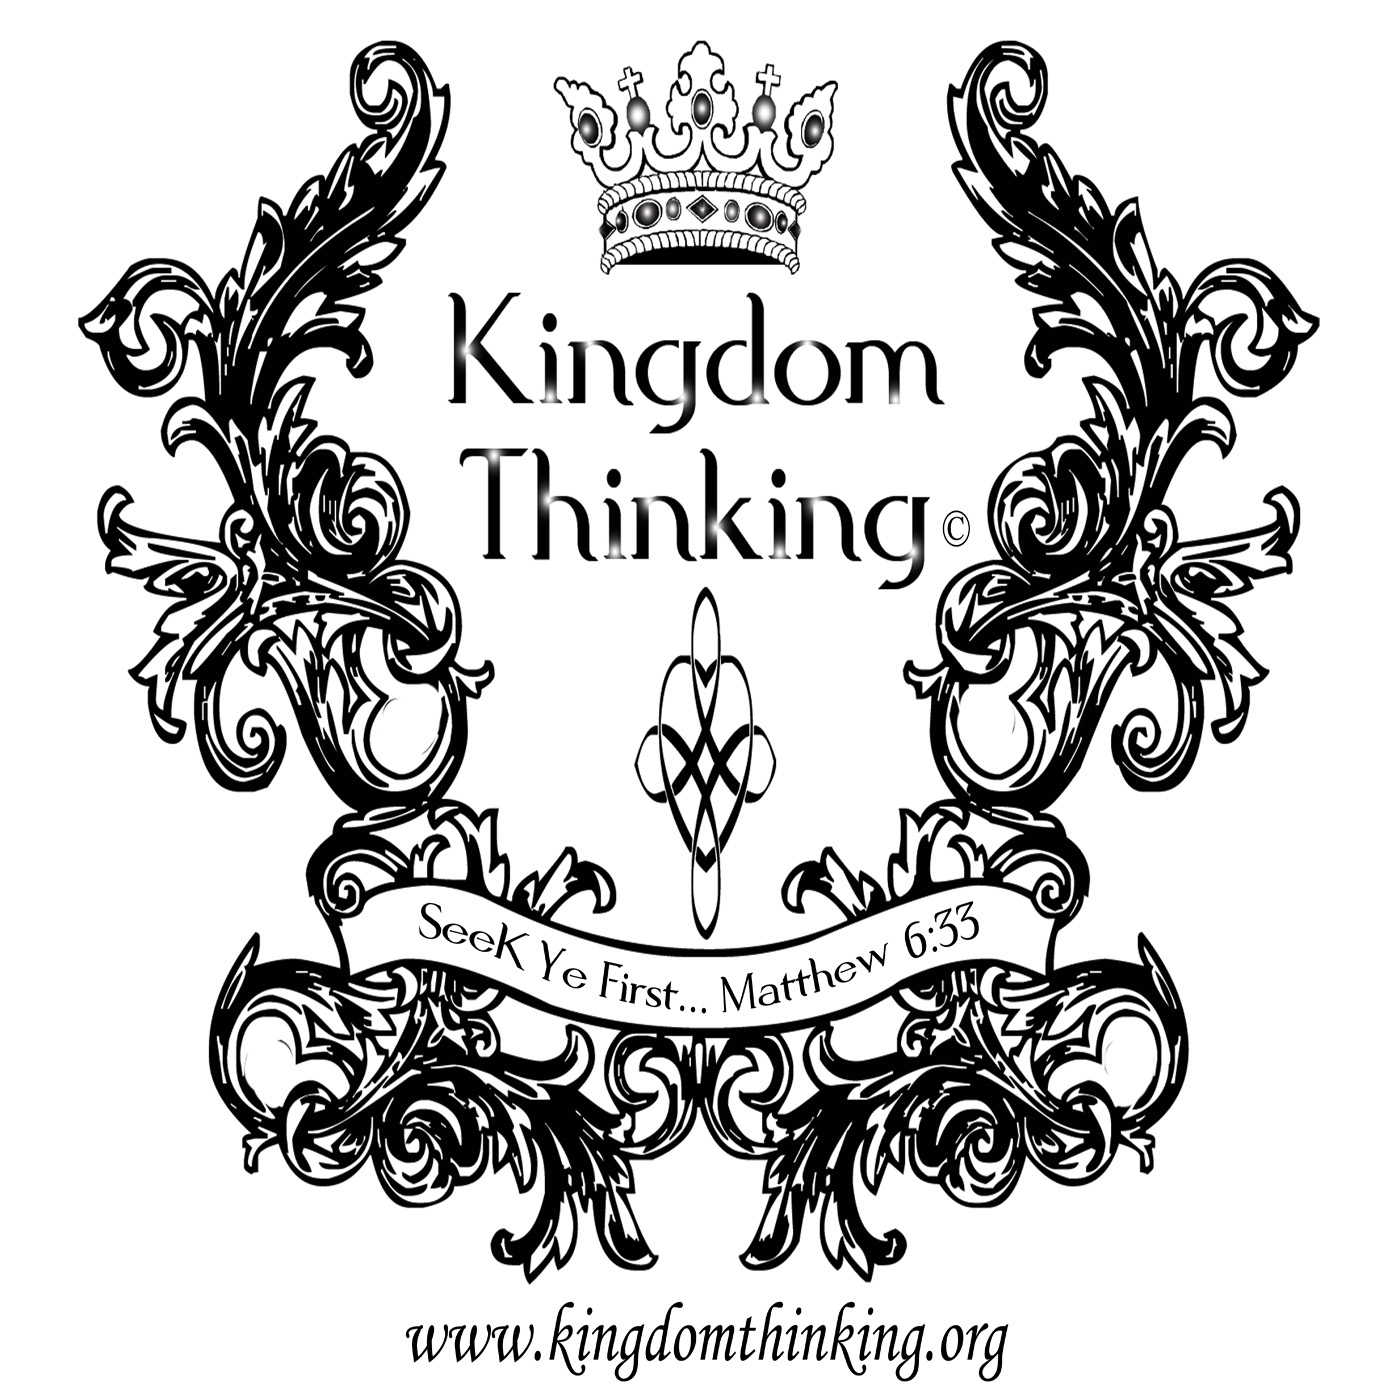 Kingdom Thinking Podcast - Living Life On Purpose with Purpose  show art